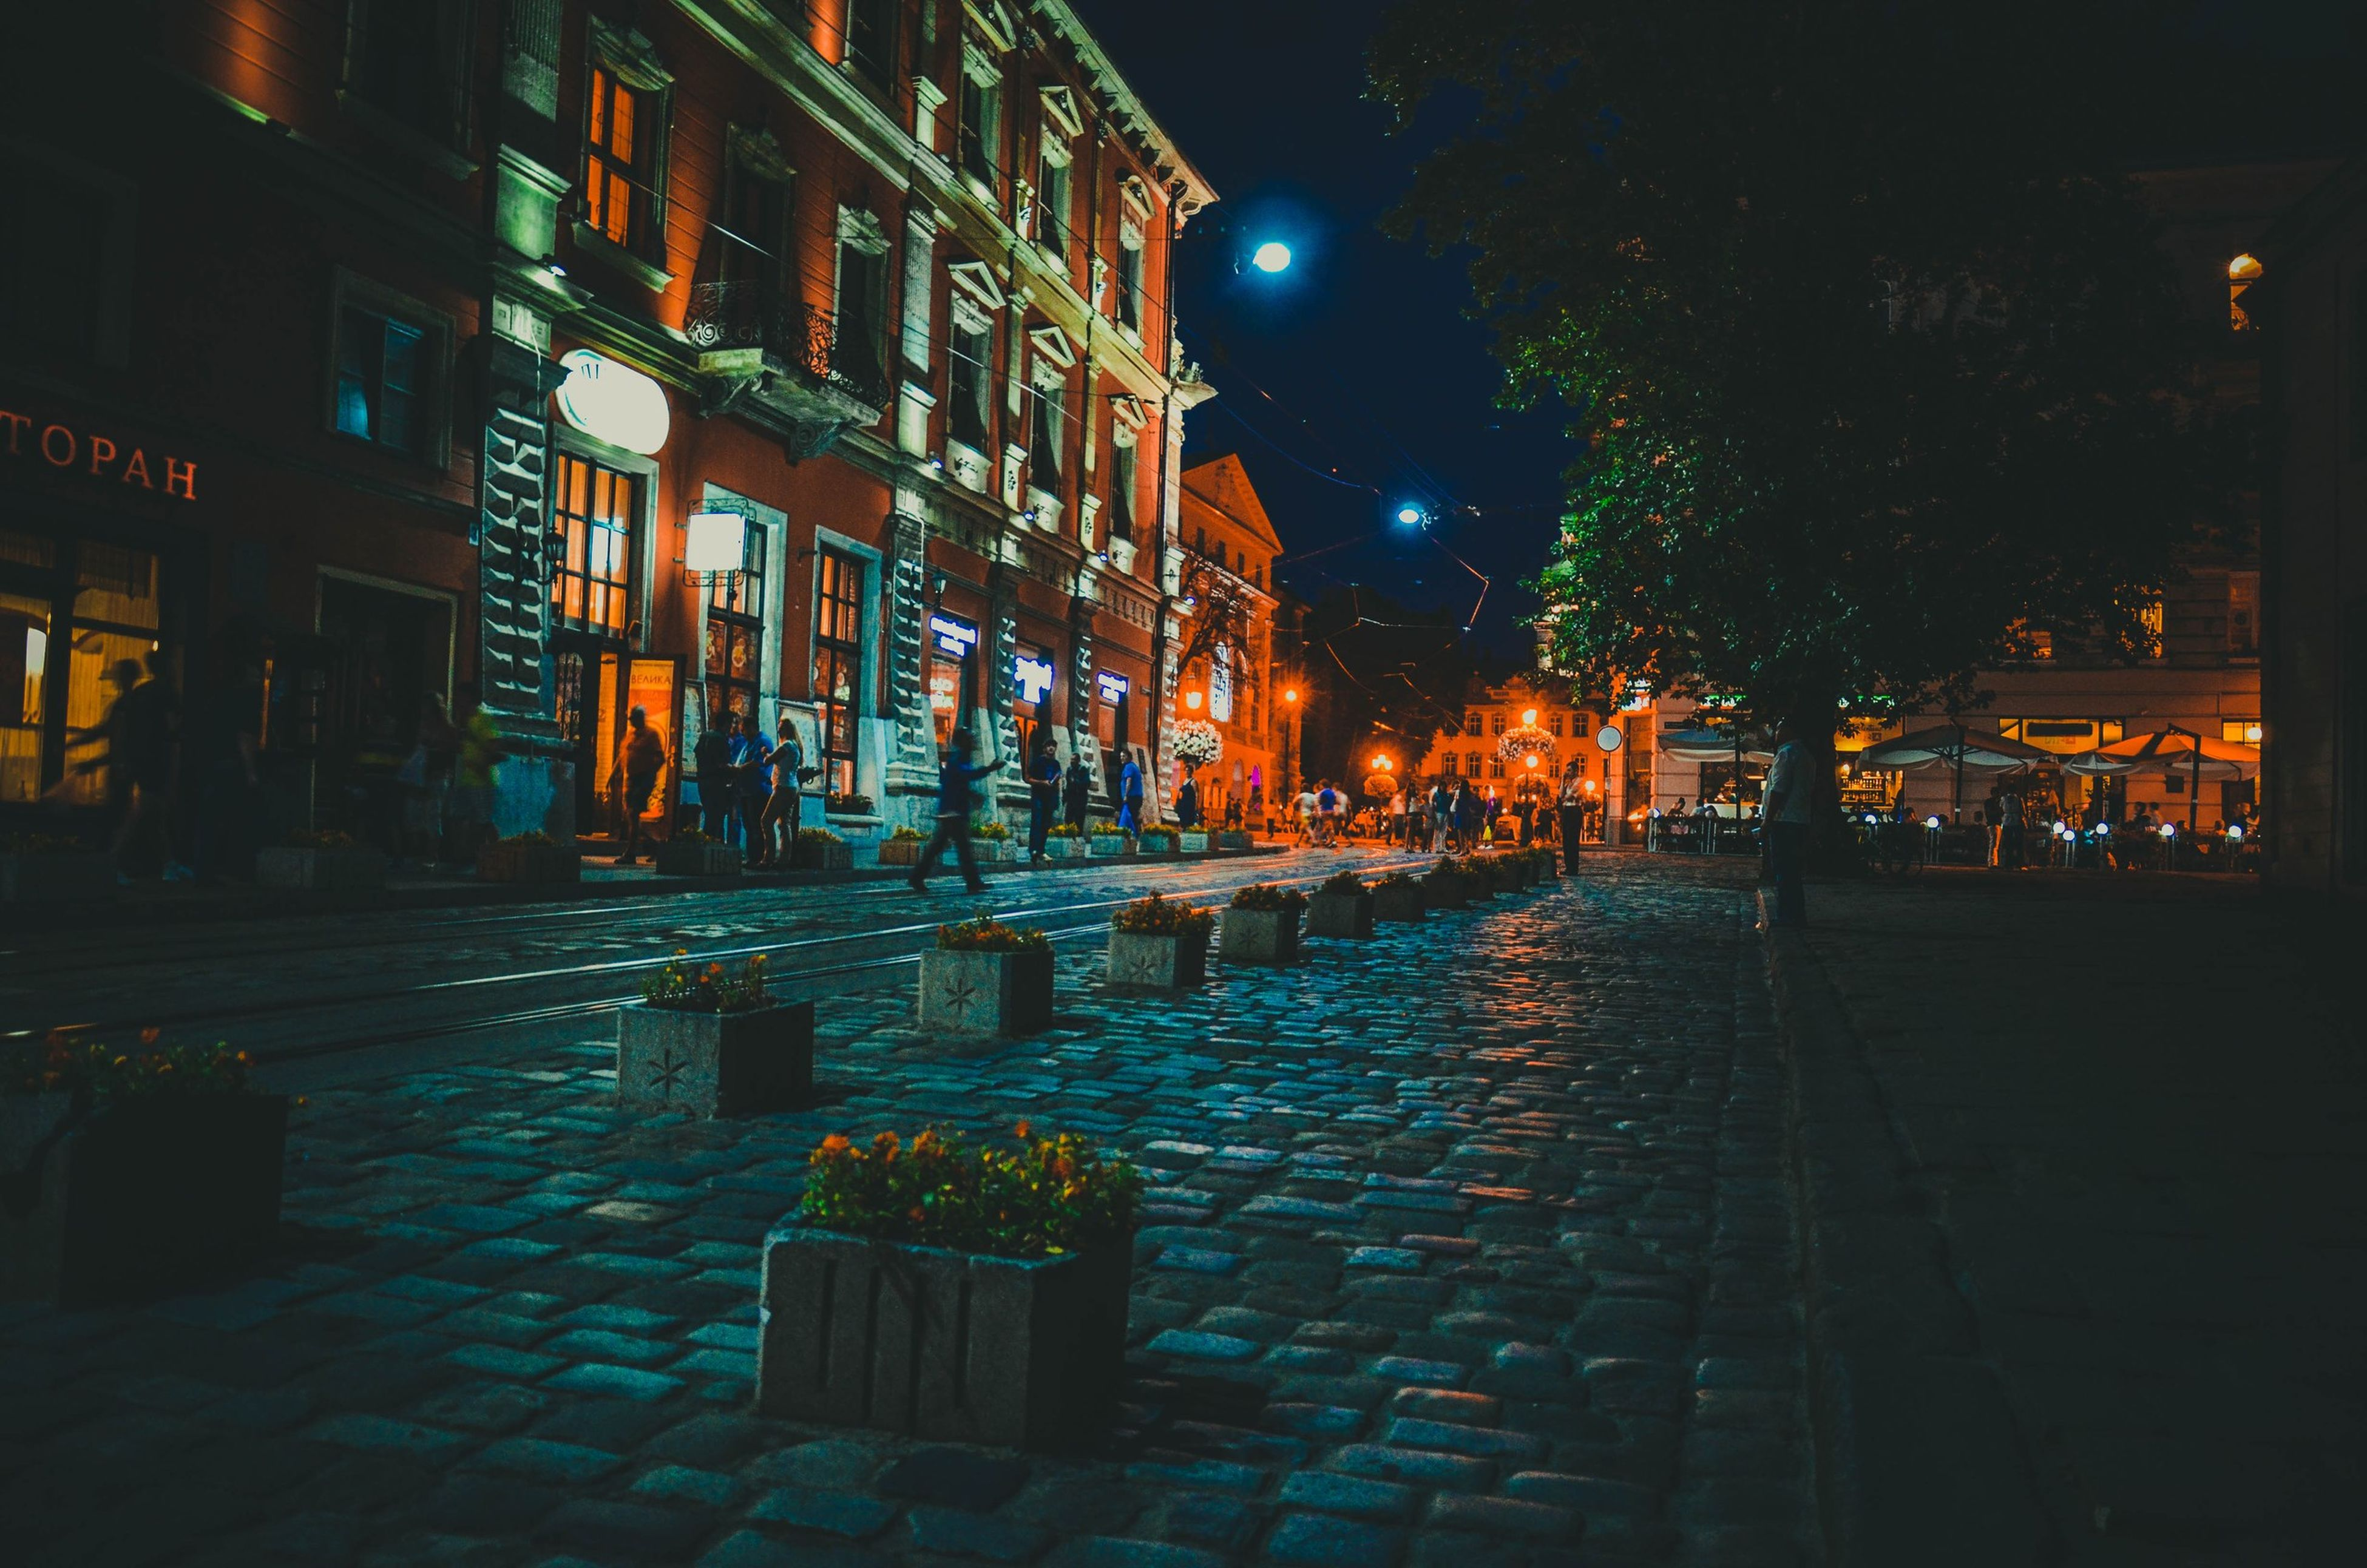 night, illuminated, building exterior, architecture, built structure, street light, lighting equipment, street, city, the way forward, building, residential building, light - natural phenomenon, cobblestone, residential structure, outdoors, road, sidewalk, city street, dark